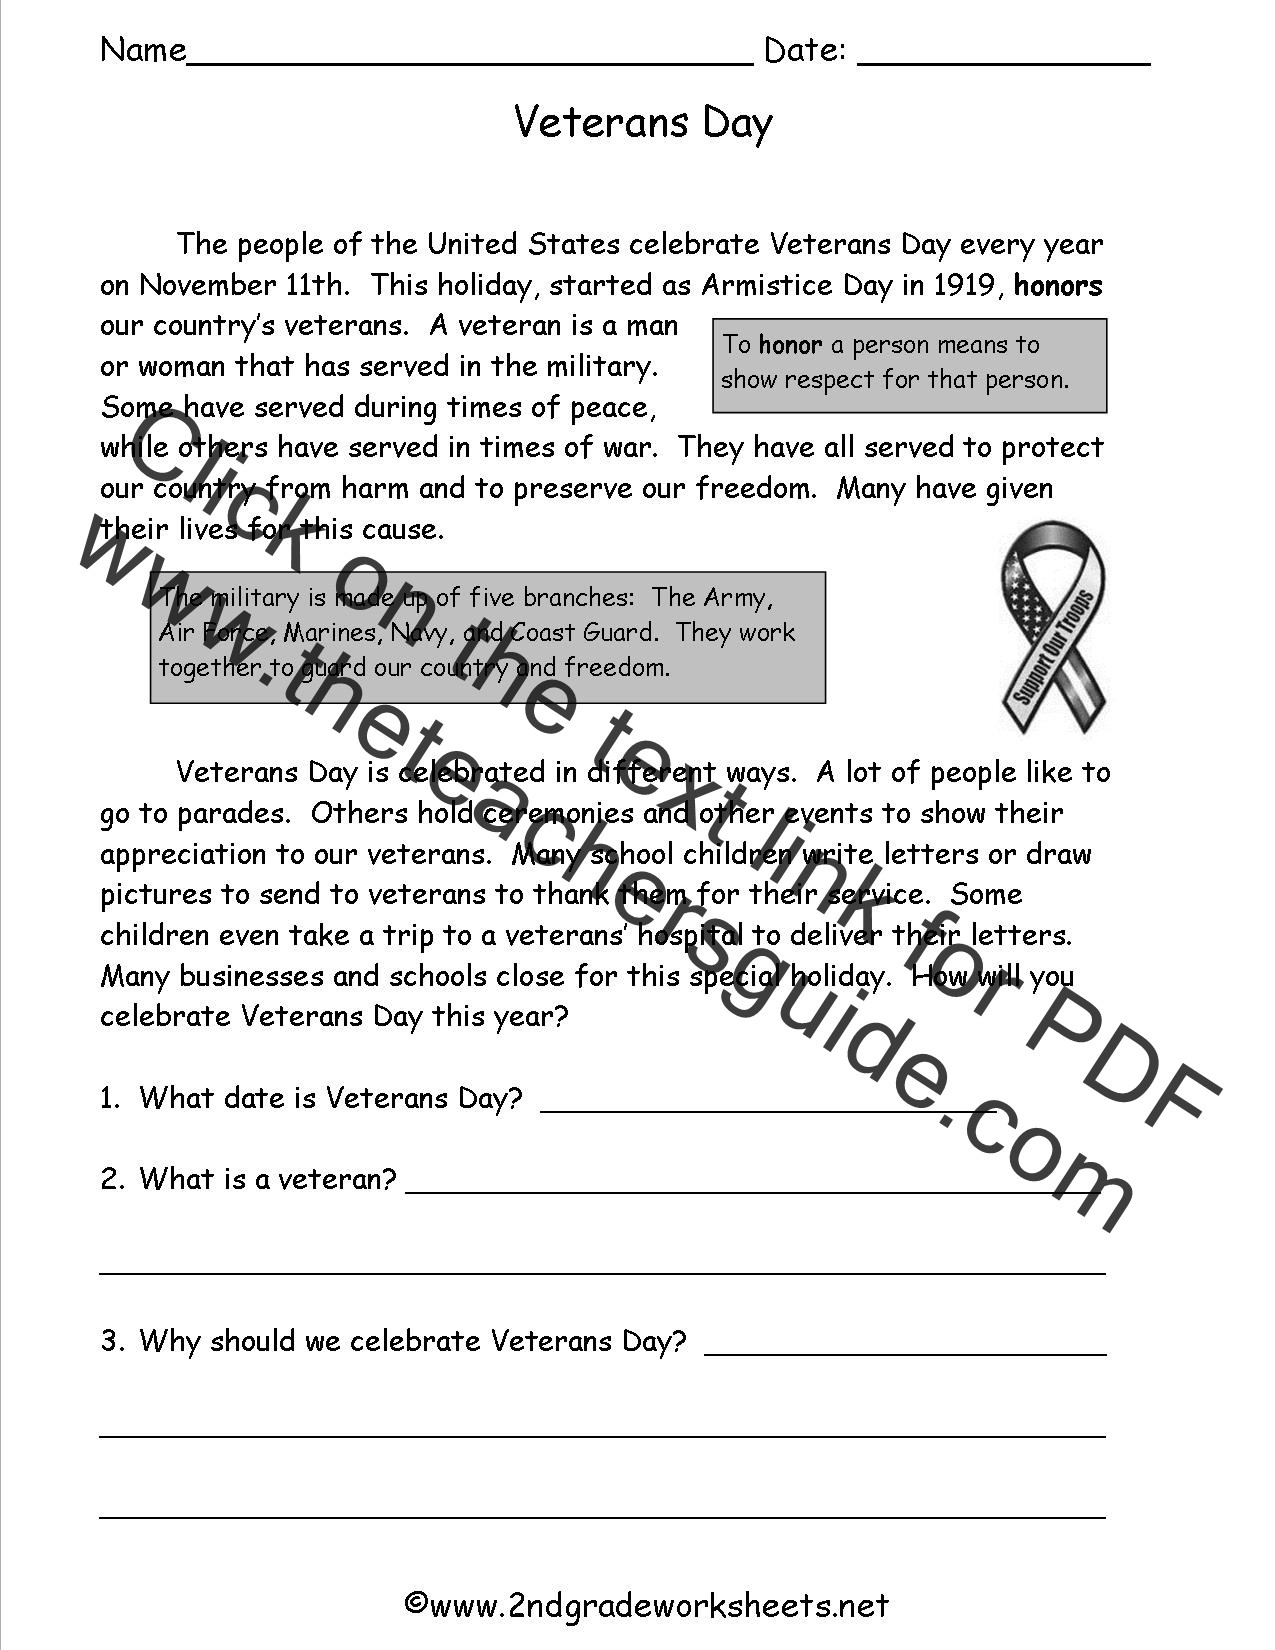 Memorial Day Worksheets First Grade Veterans Day Worksheets Printable that are Lively